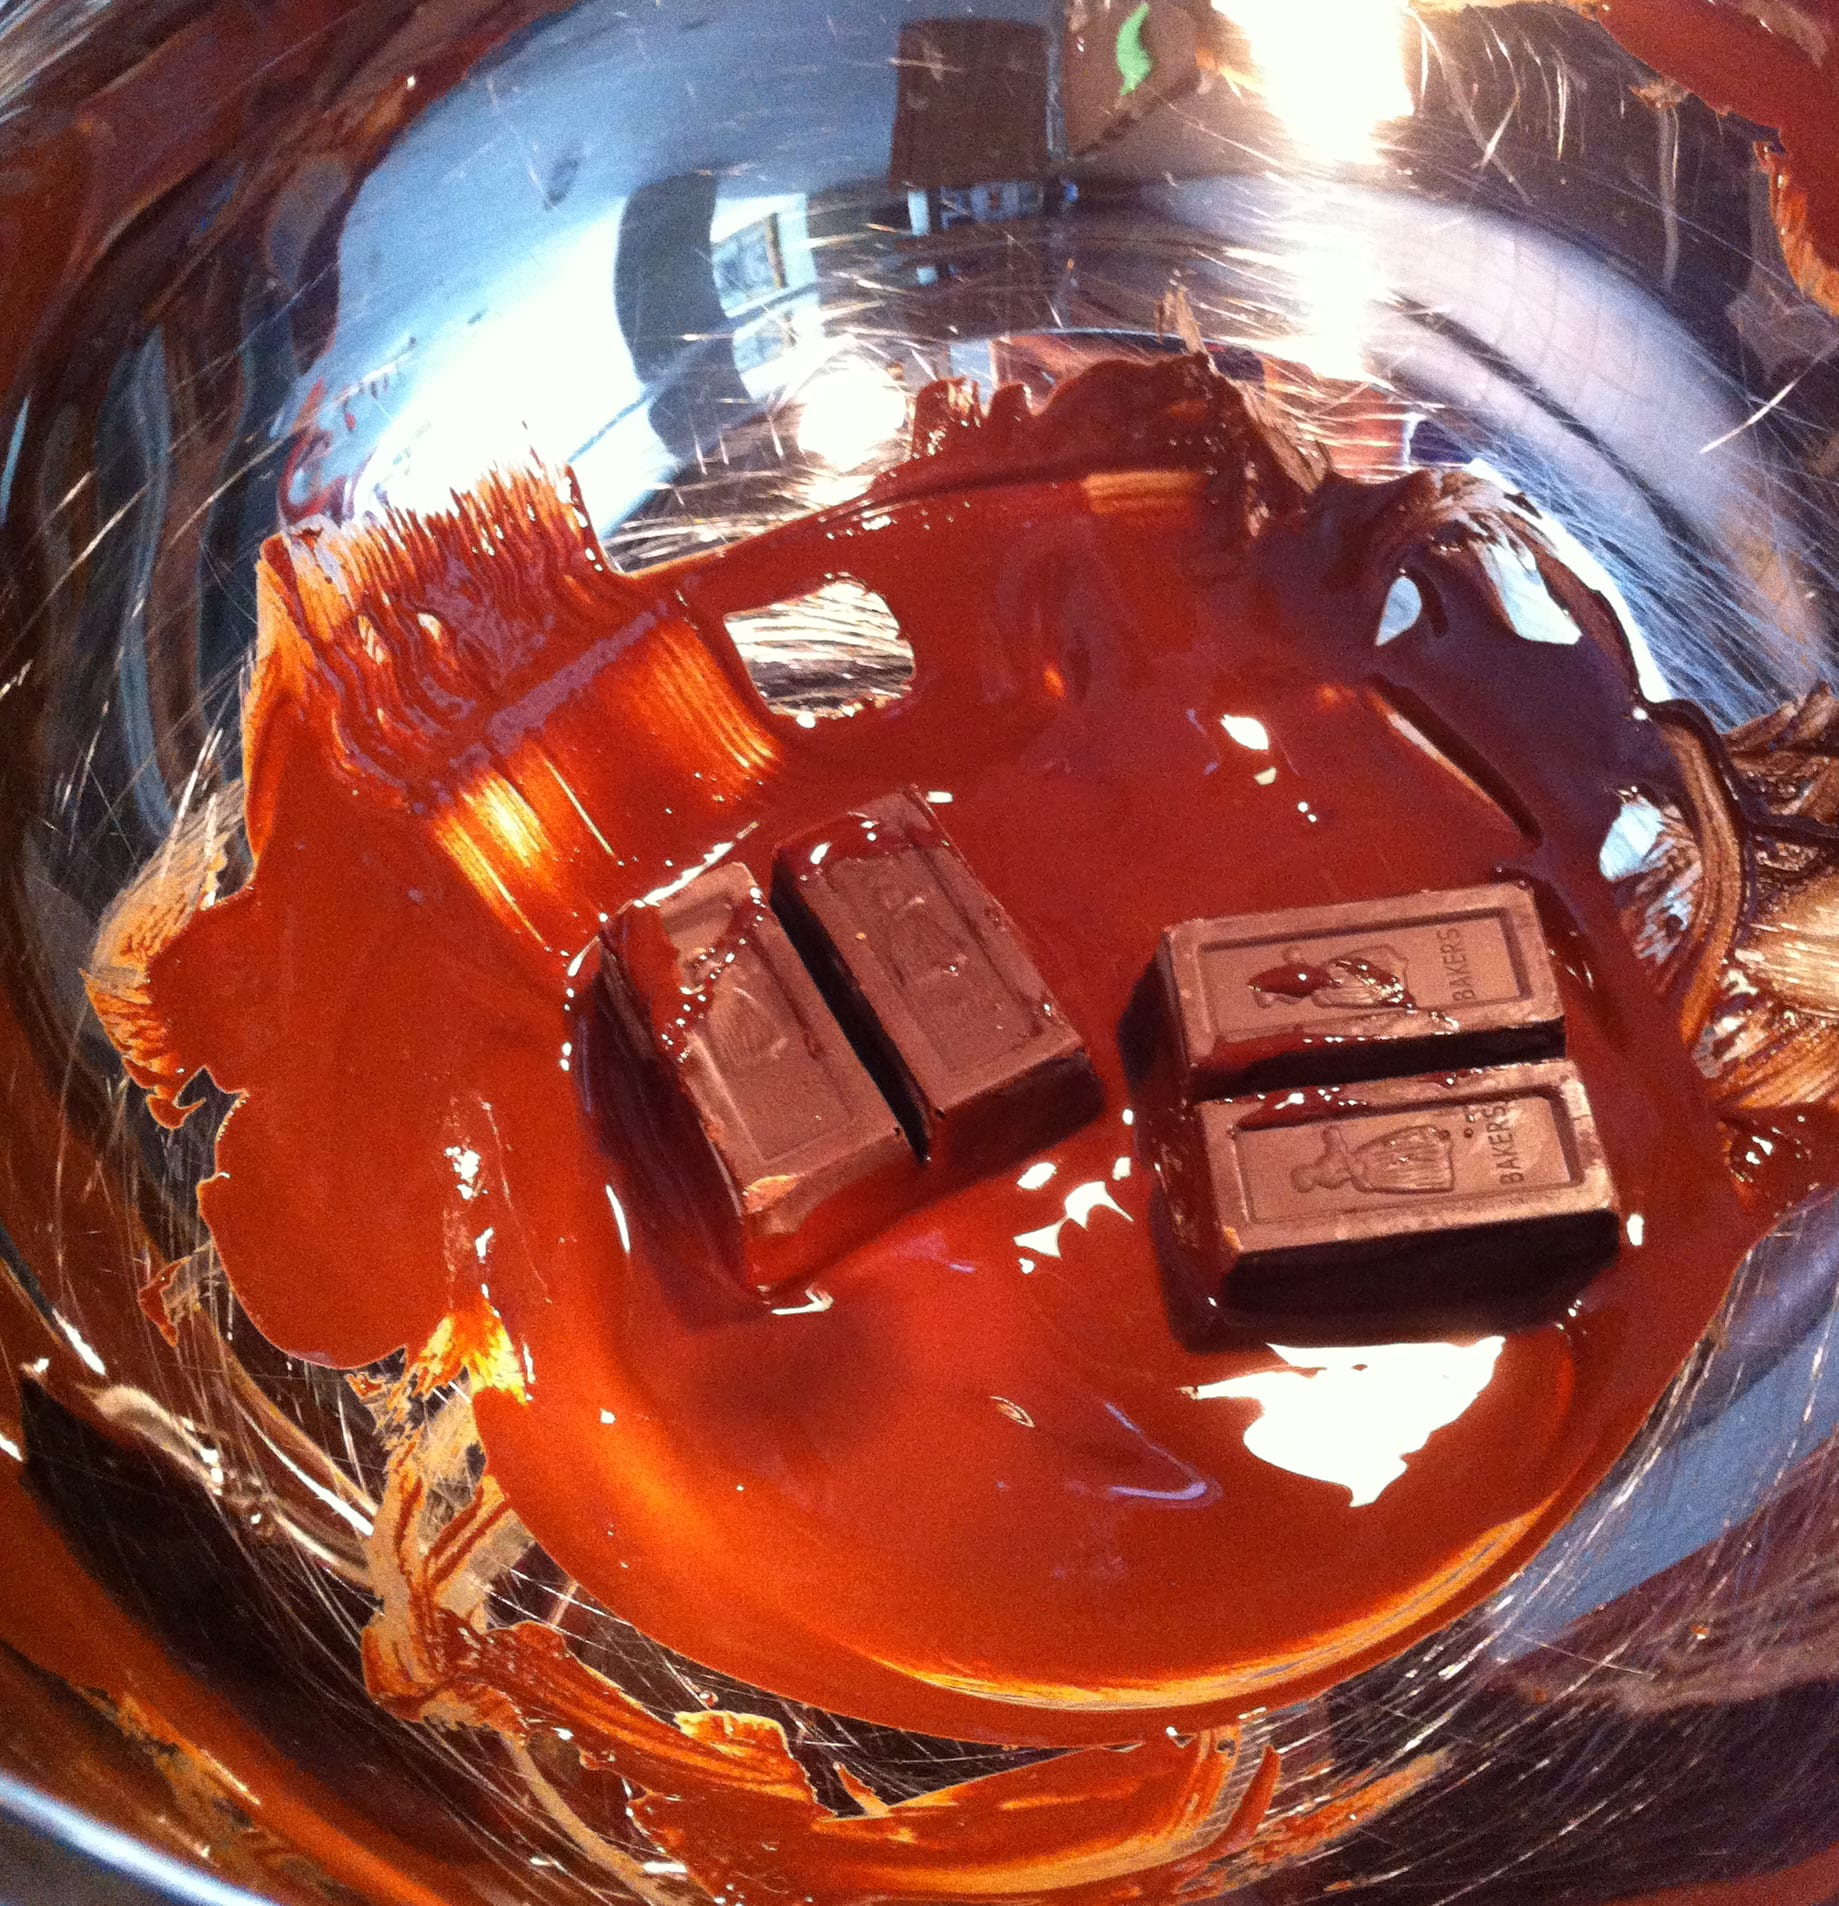 Melting Chocolate for Brownies